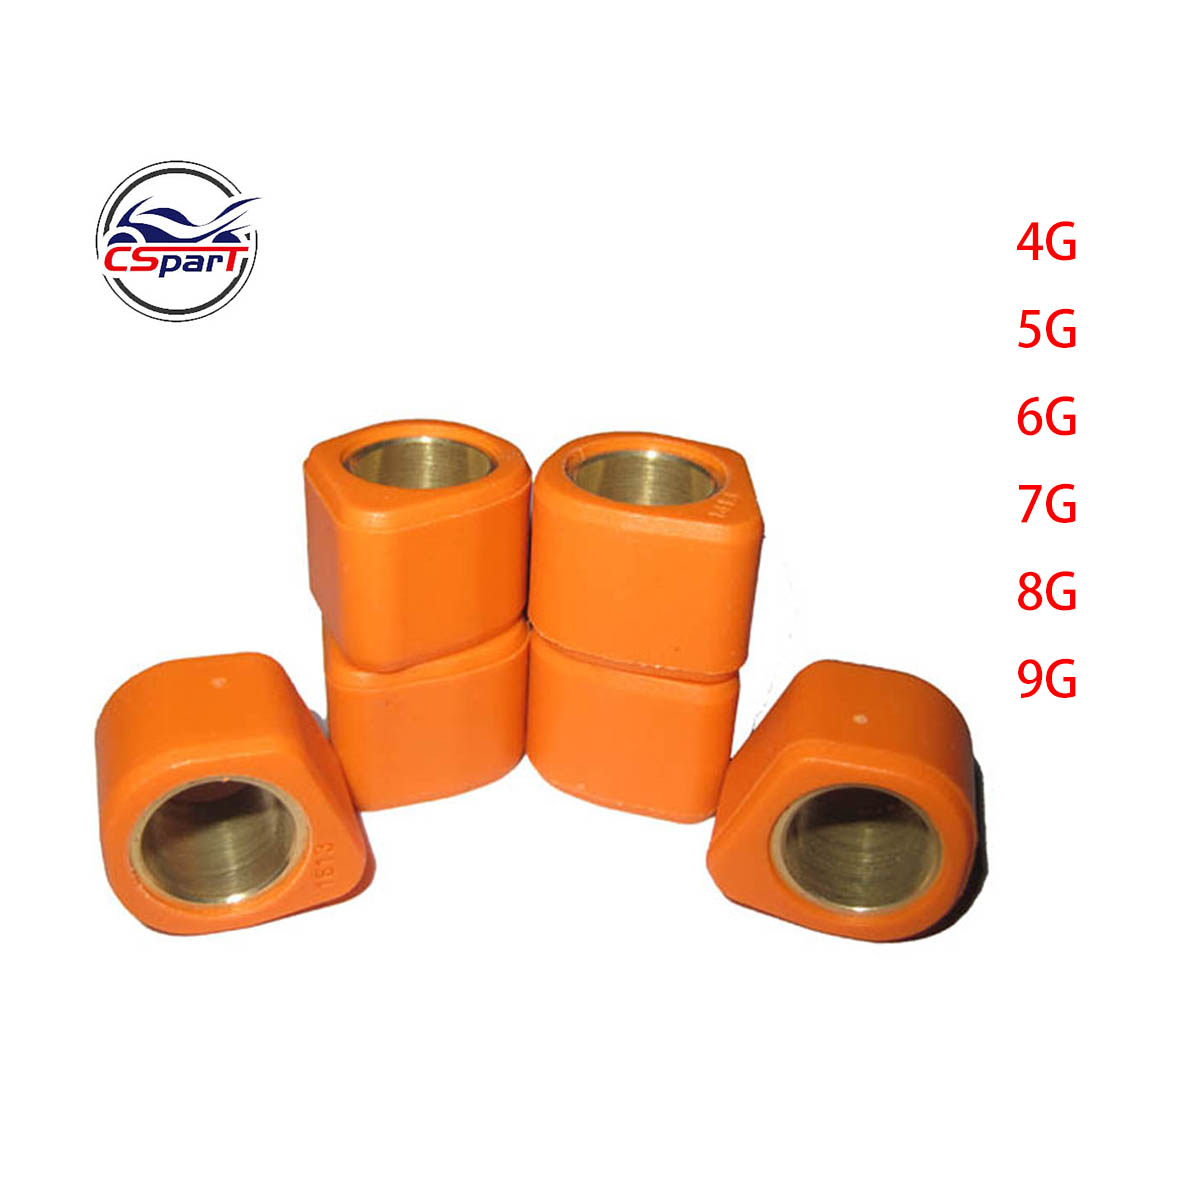 16x13 4G 5G 6G 7G 8G 9G Performance Variator Rollers For GY6 50 50CC  139QMB Scooter DIO Lead  100 110 SCV100 SH50 SKY 50